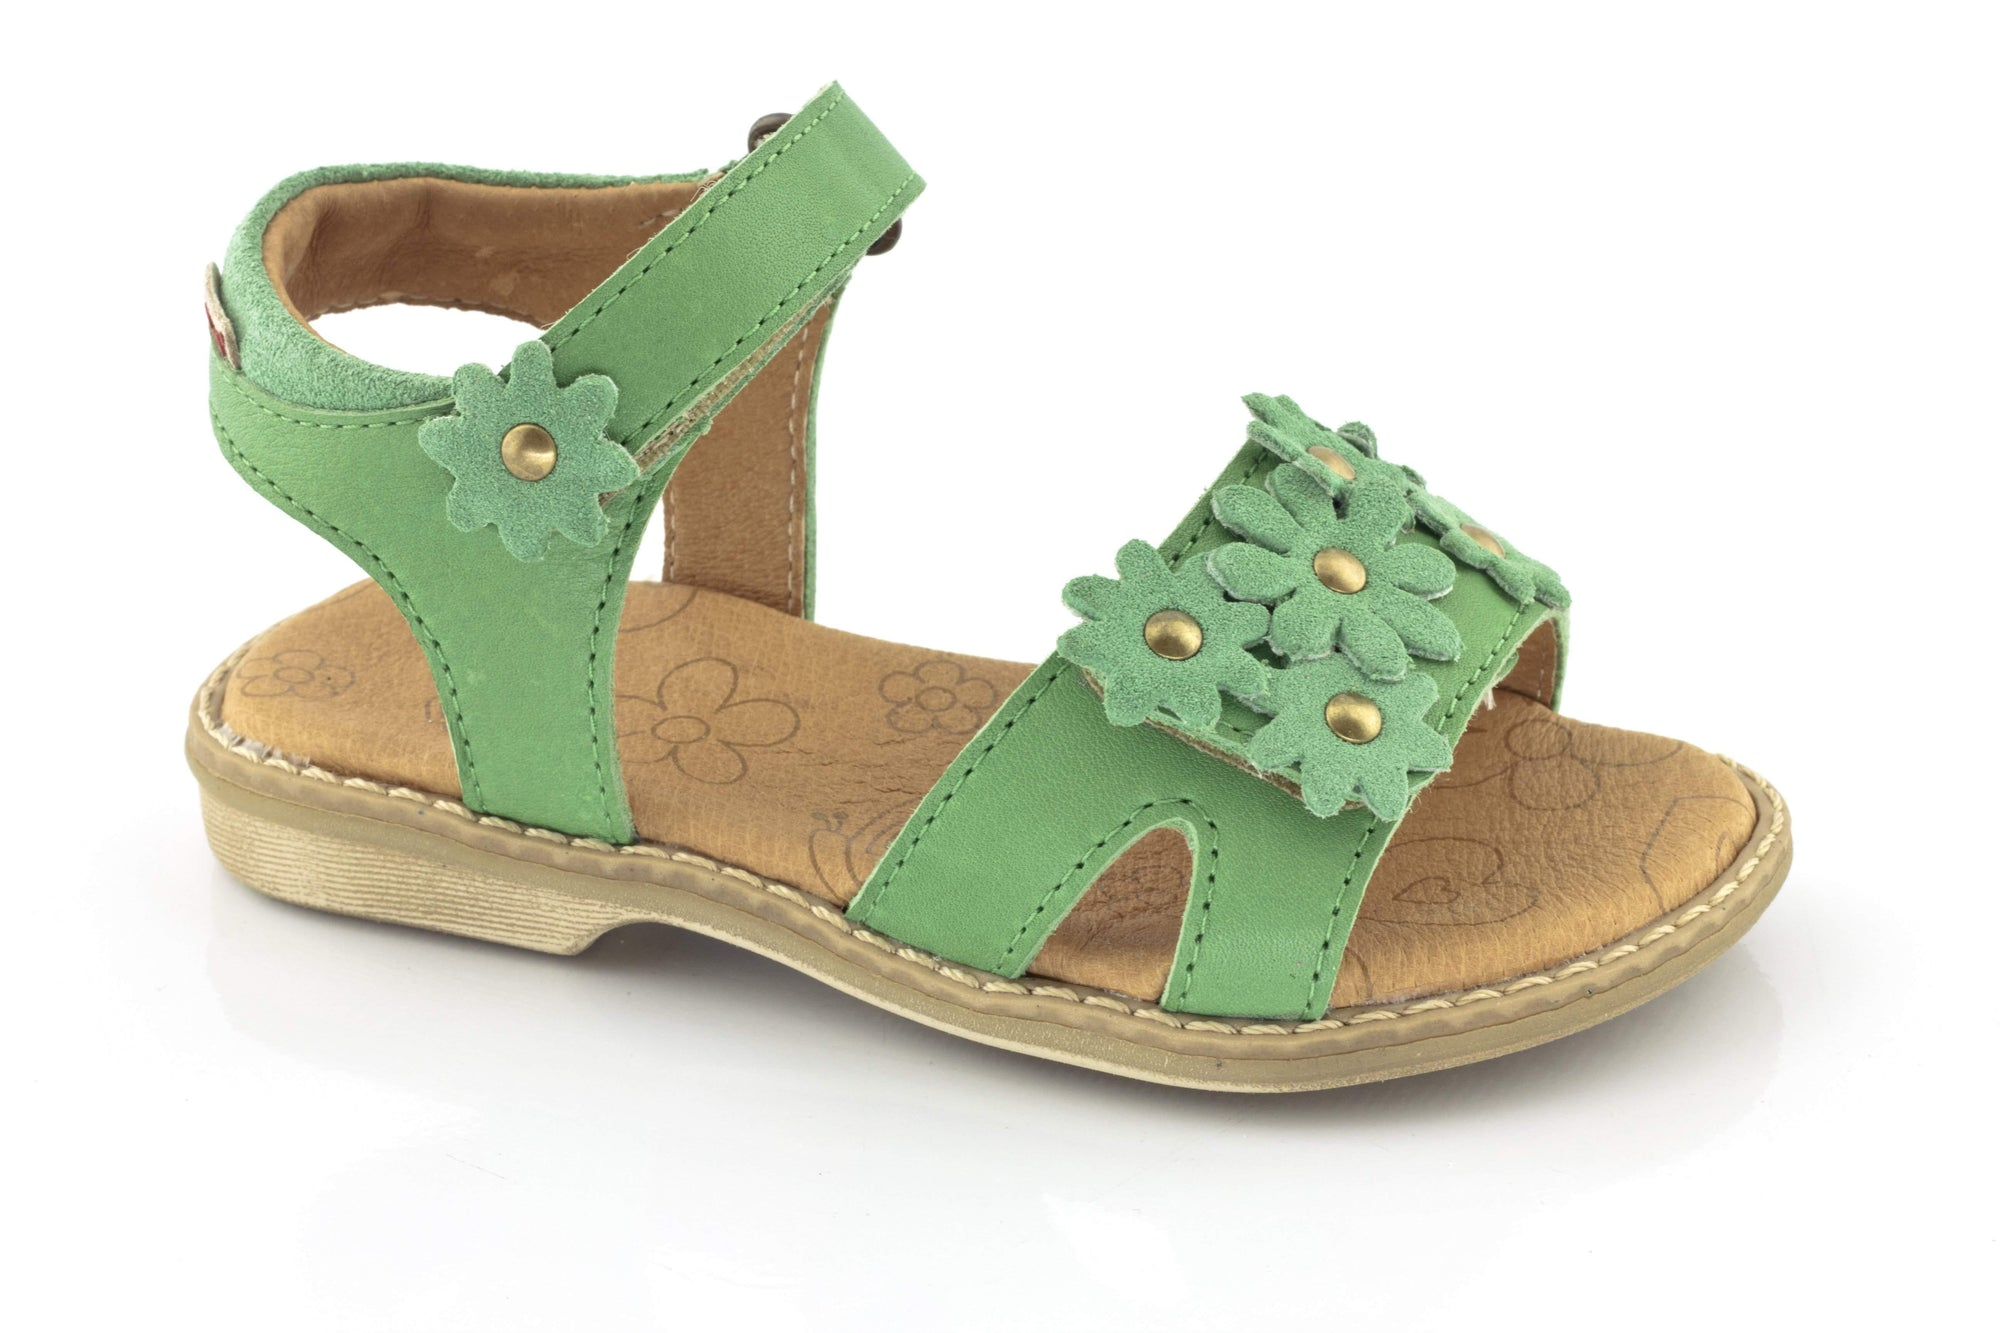 Froddo/G3150058/Green/Girls Leather Sandals - ShoeKid.ca